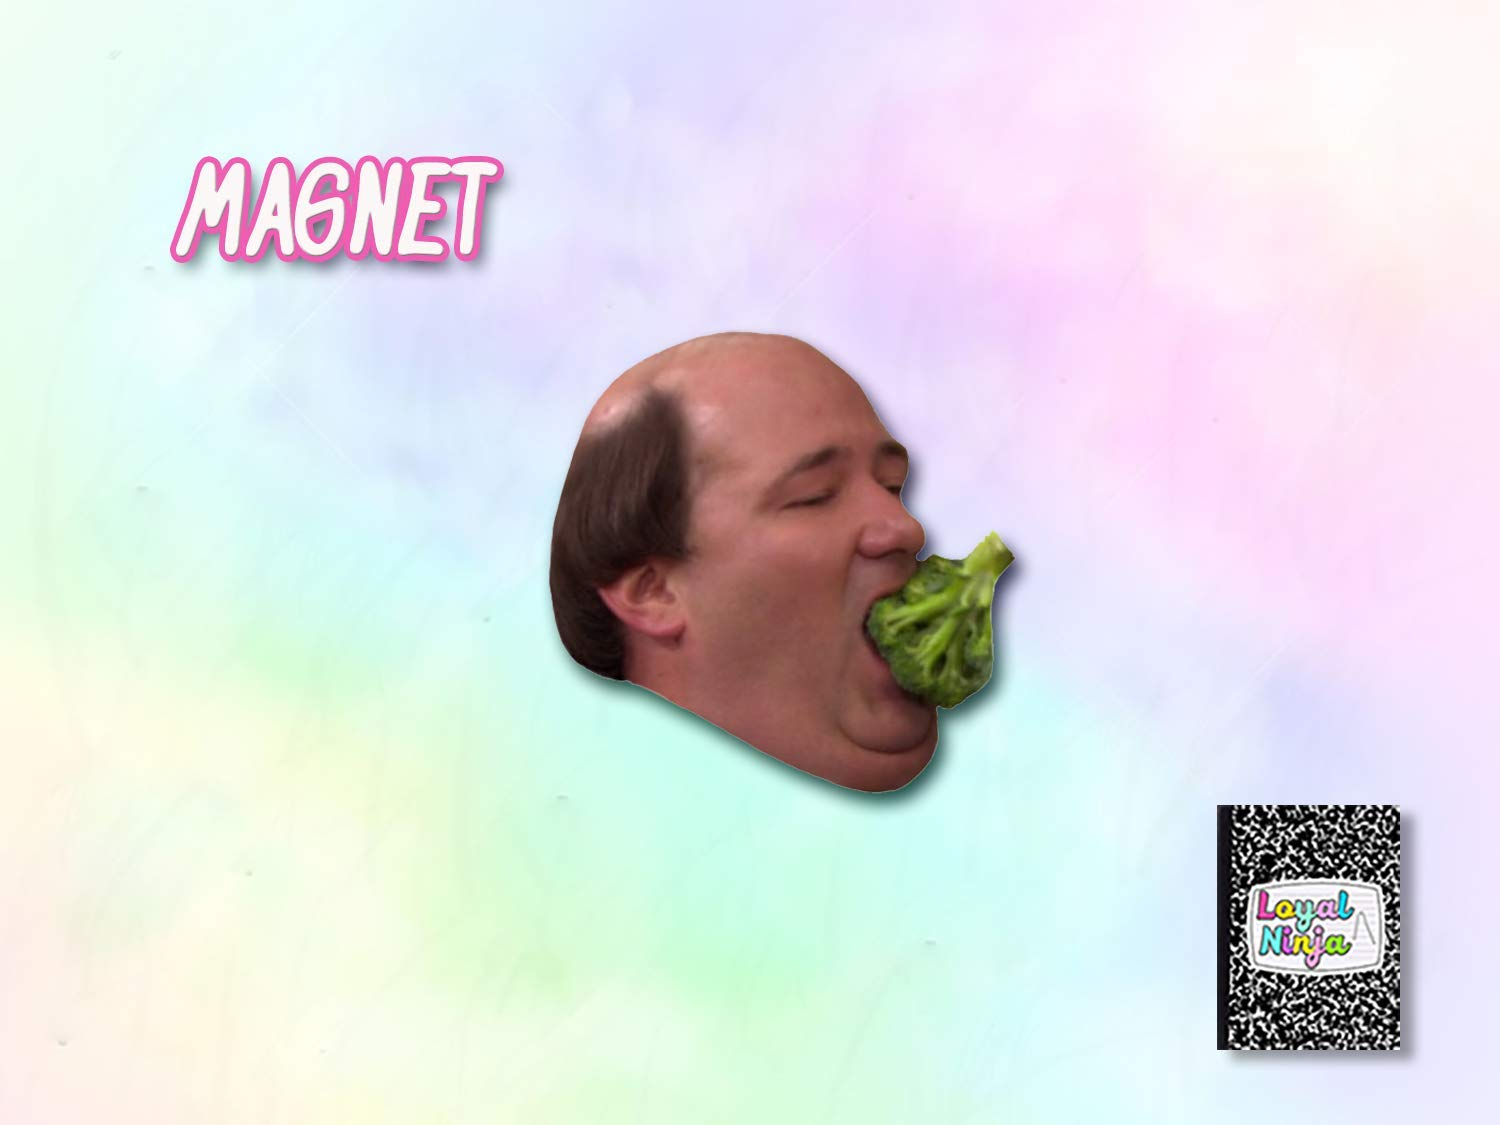 Kevin Malone Broccoli 2.5 x 2 The Office TV Show Magnet